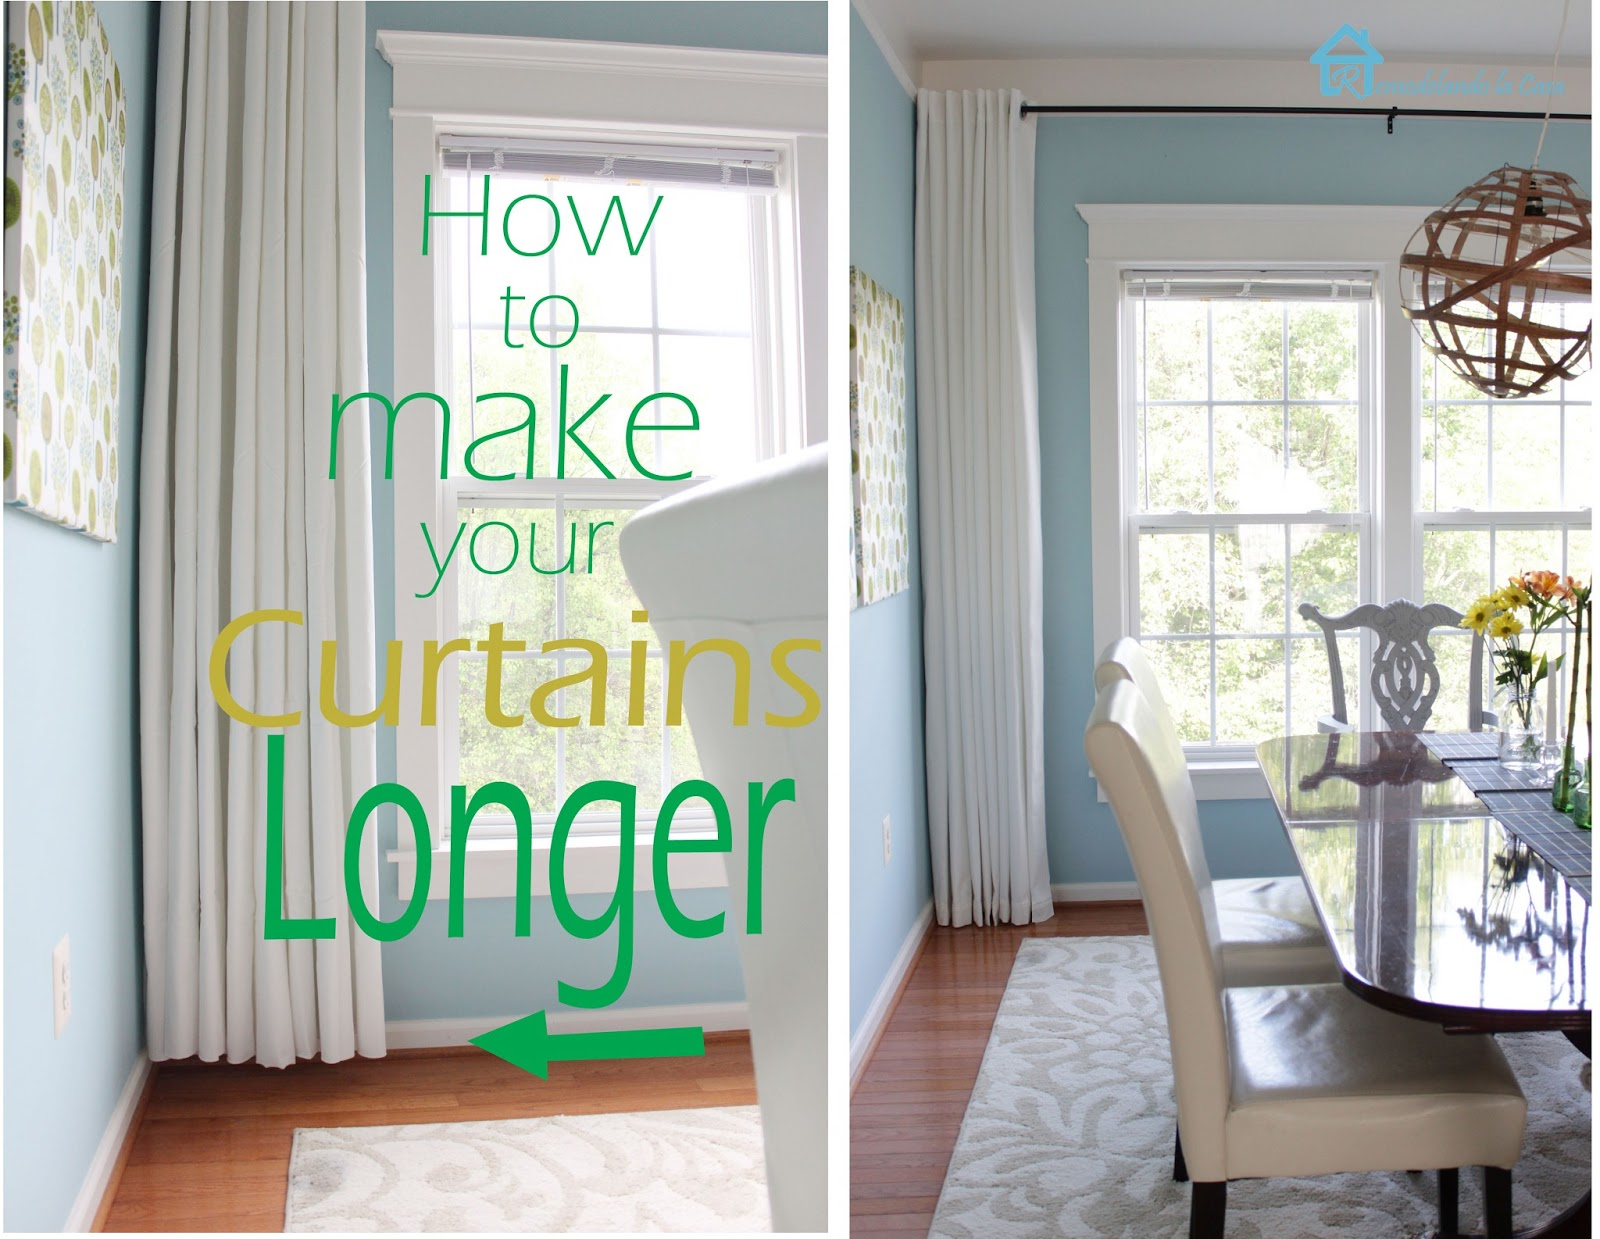 How To Make Your Curtains Longer